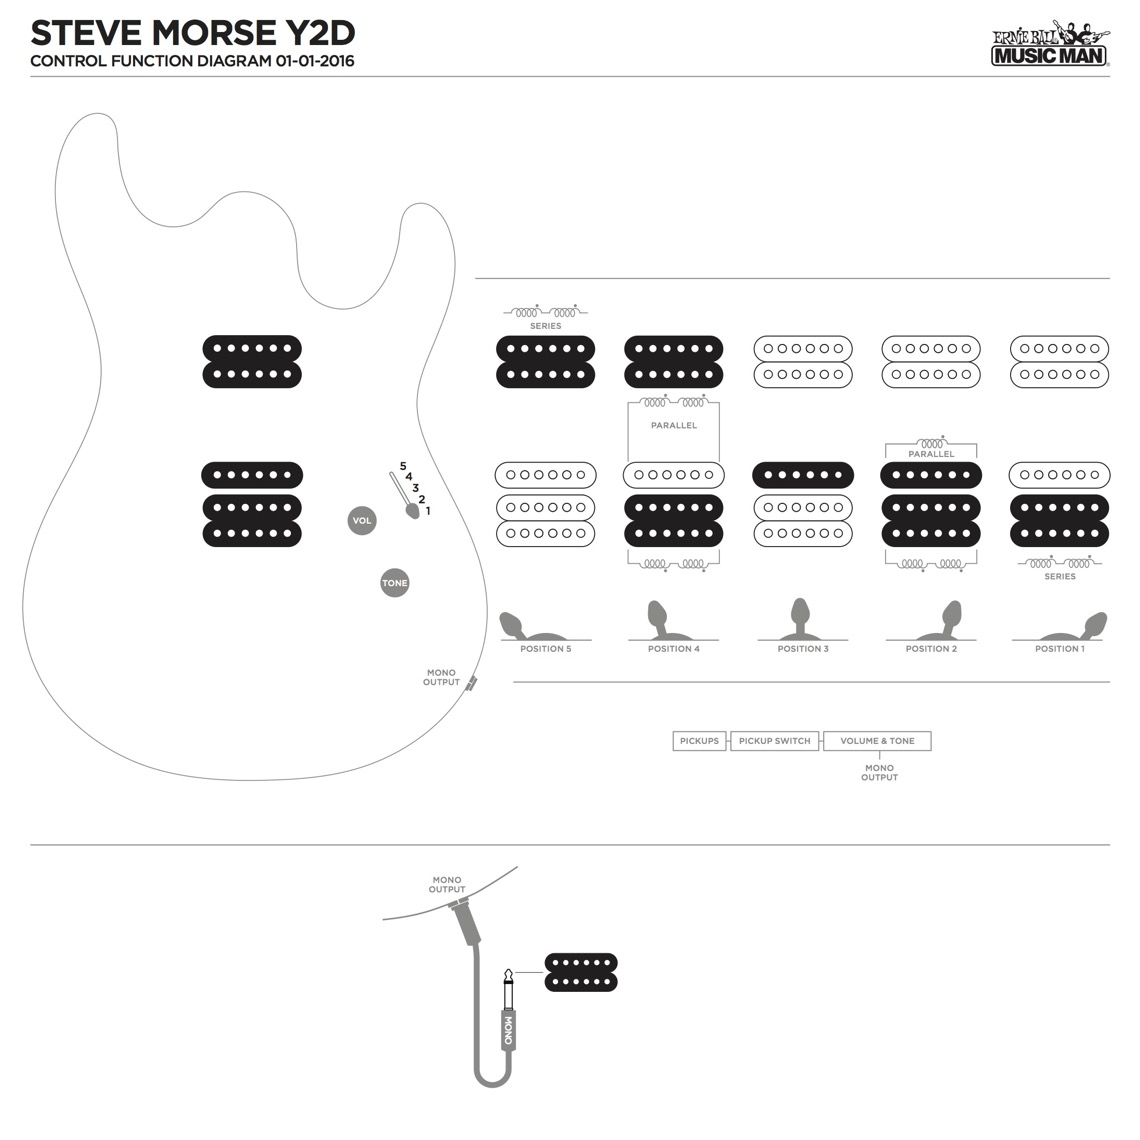 Steve Morse Y2d Guitars Ernie Ball Music Man Suhr Pick Up Strat Wiring Diagram Pickup Configuration 1